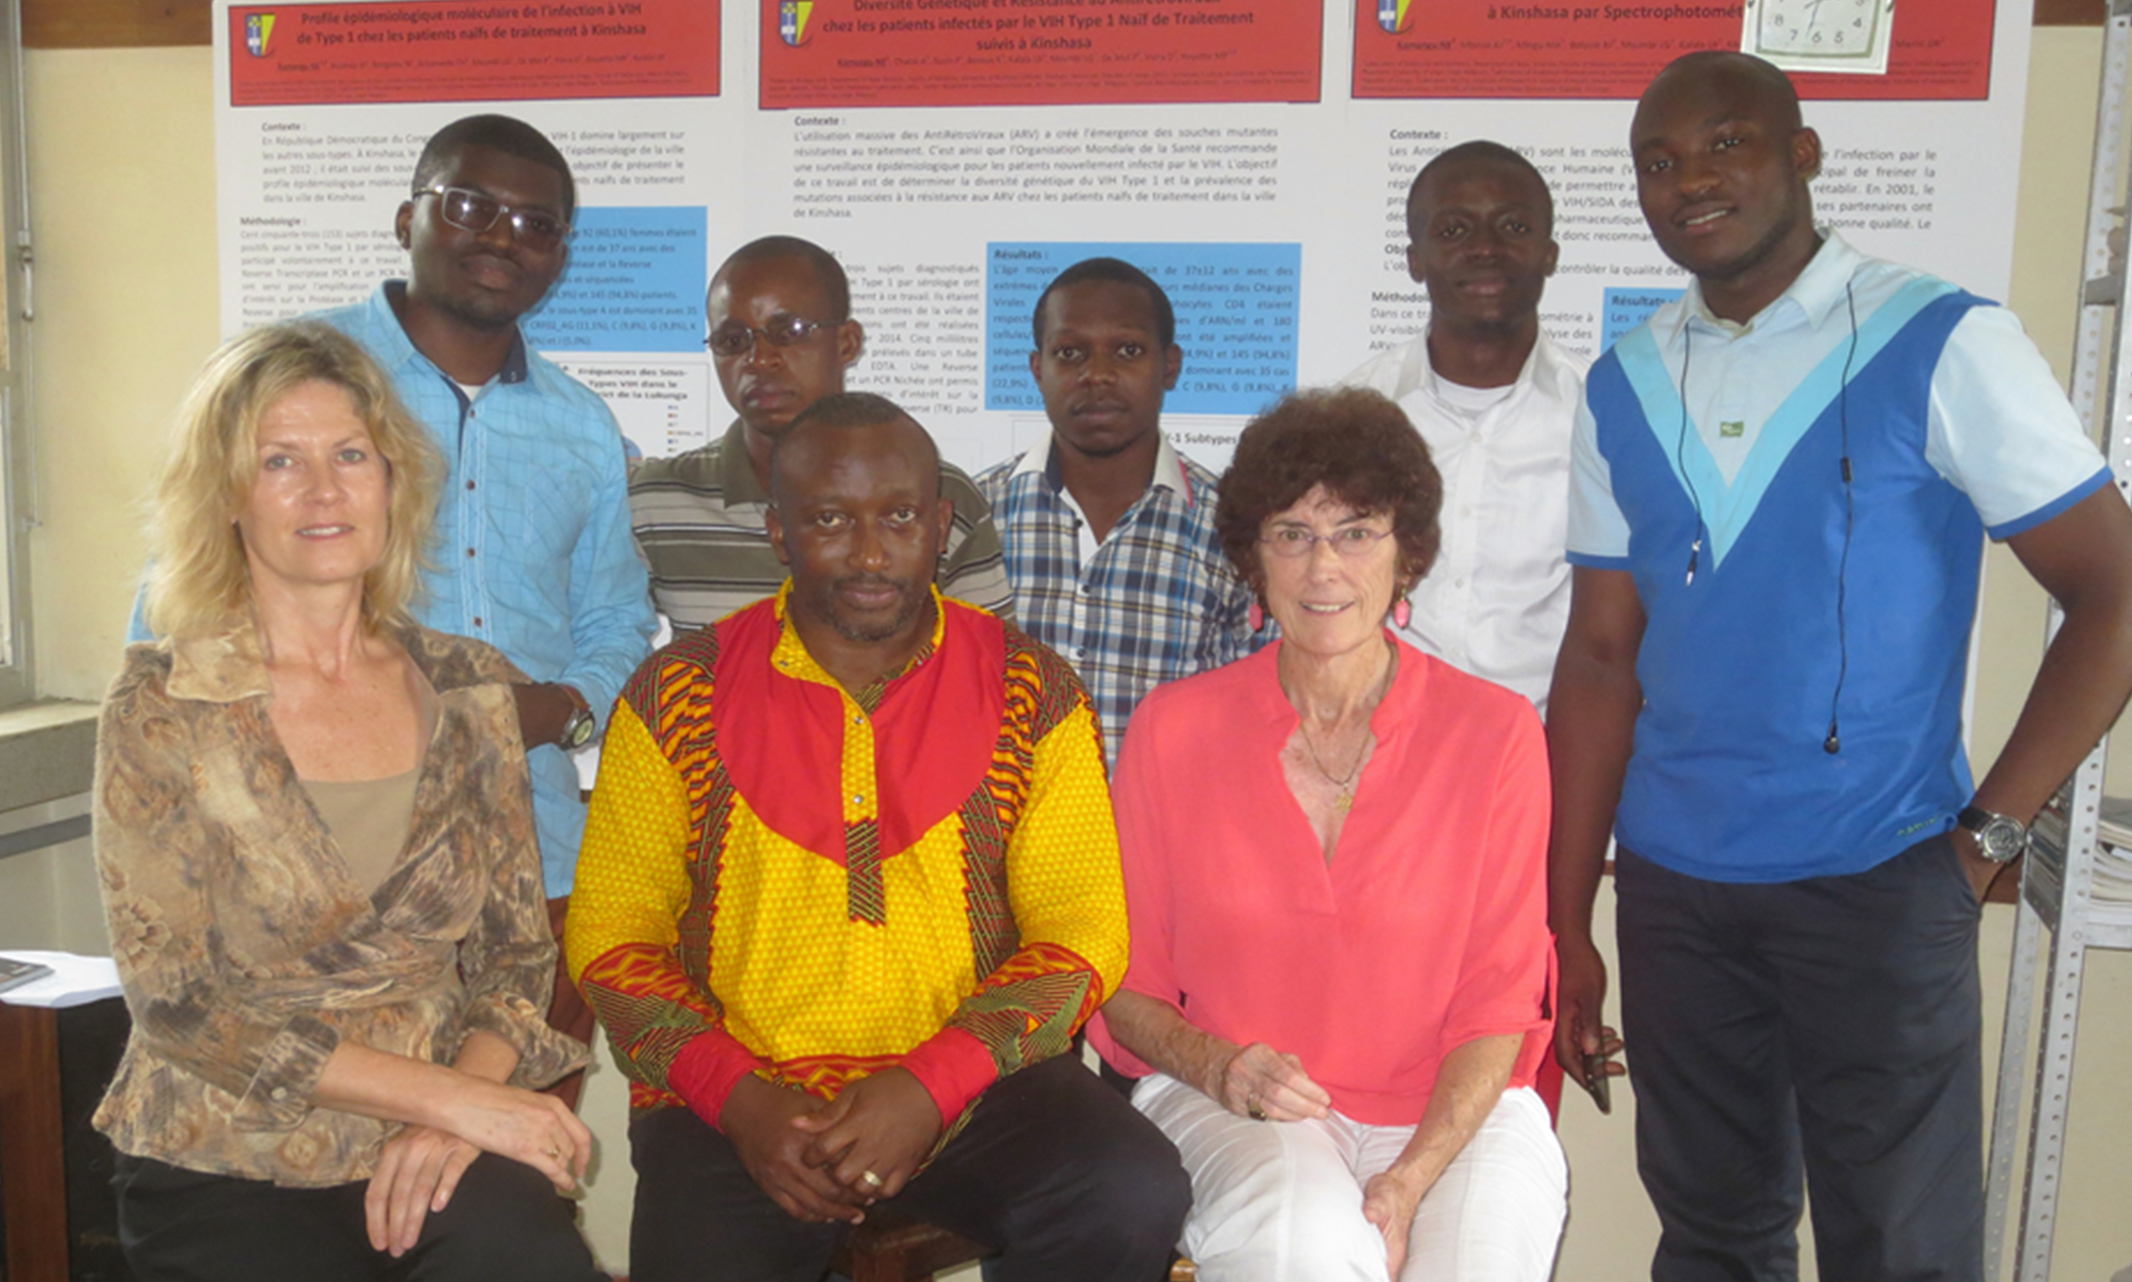 Carole McArthur with the research team in the Democratic Republic of Congo